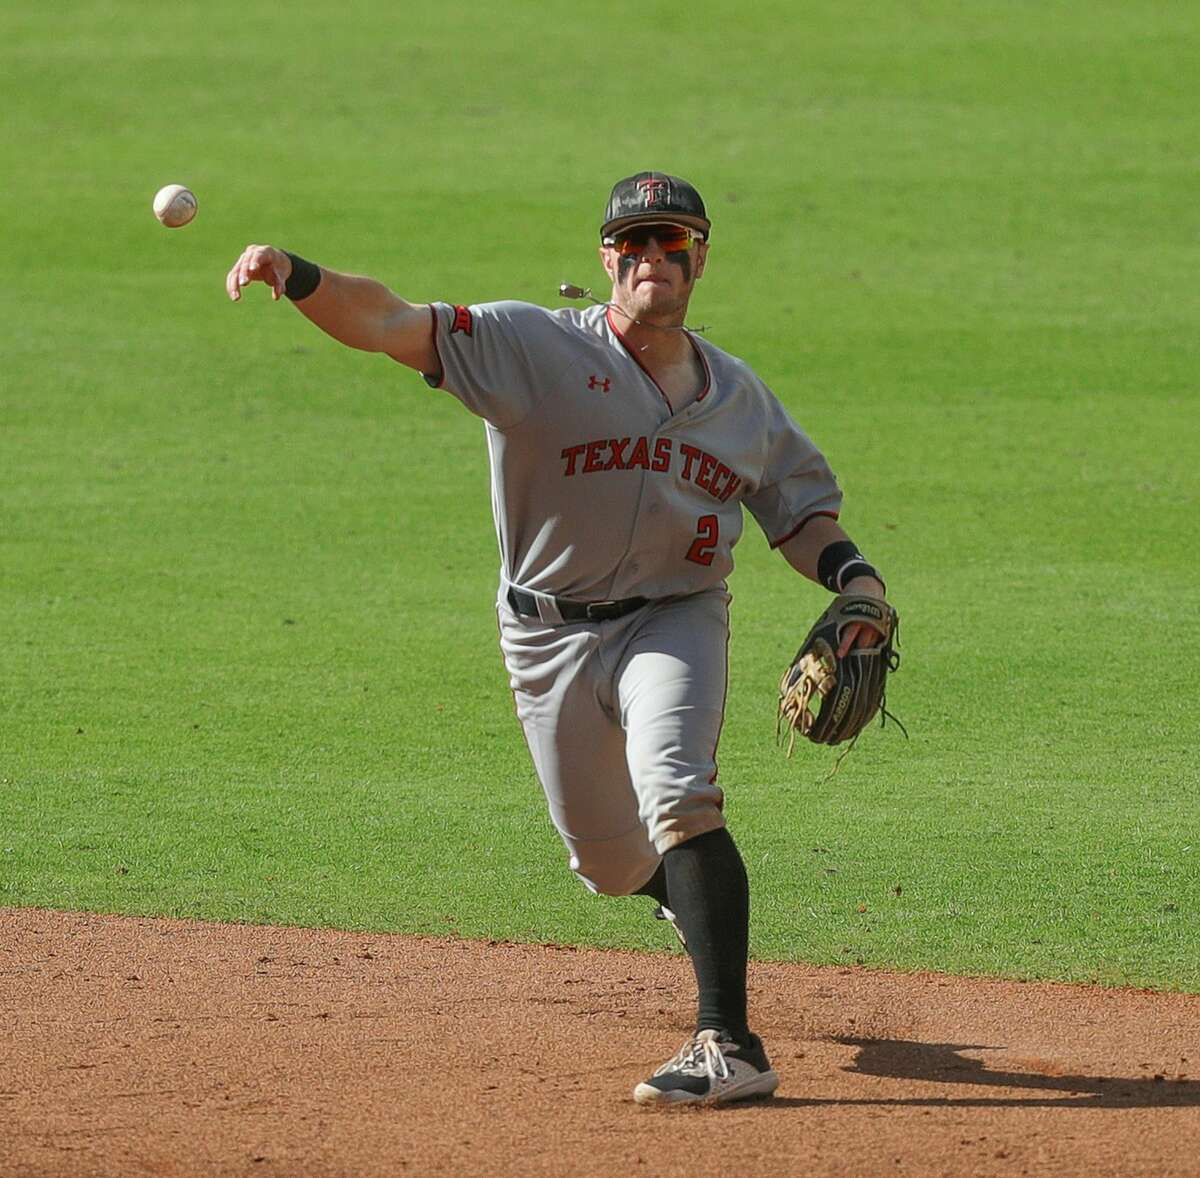 HOUSTON, TEXAS - MARCH 06: Jace Jung #2 of the Texas Tech Red Raiders throws to first base against the Sam Houston State Bearkats at Minute Maid Park on March 06, 2021 in Houston, Texas. (Photo by Bob Levey/Getty Images)